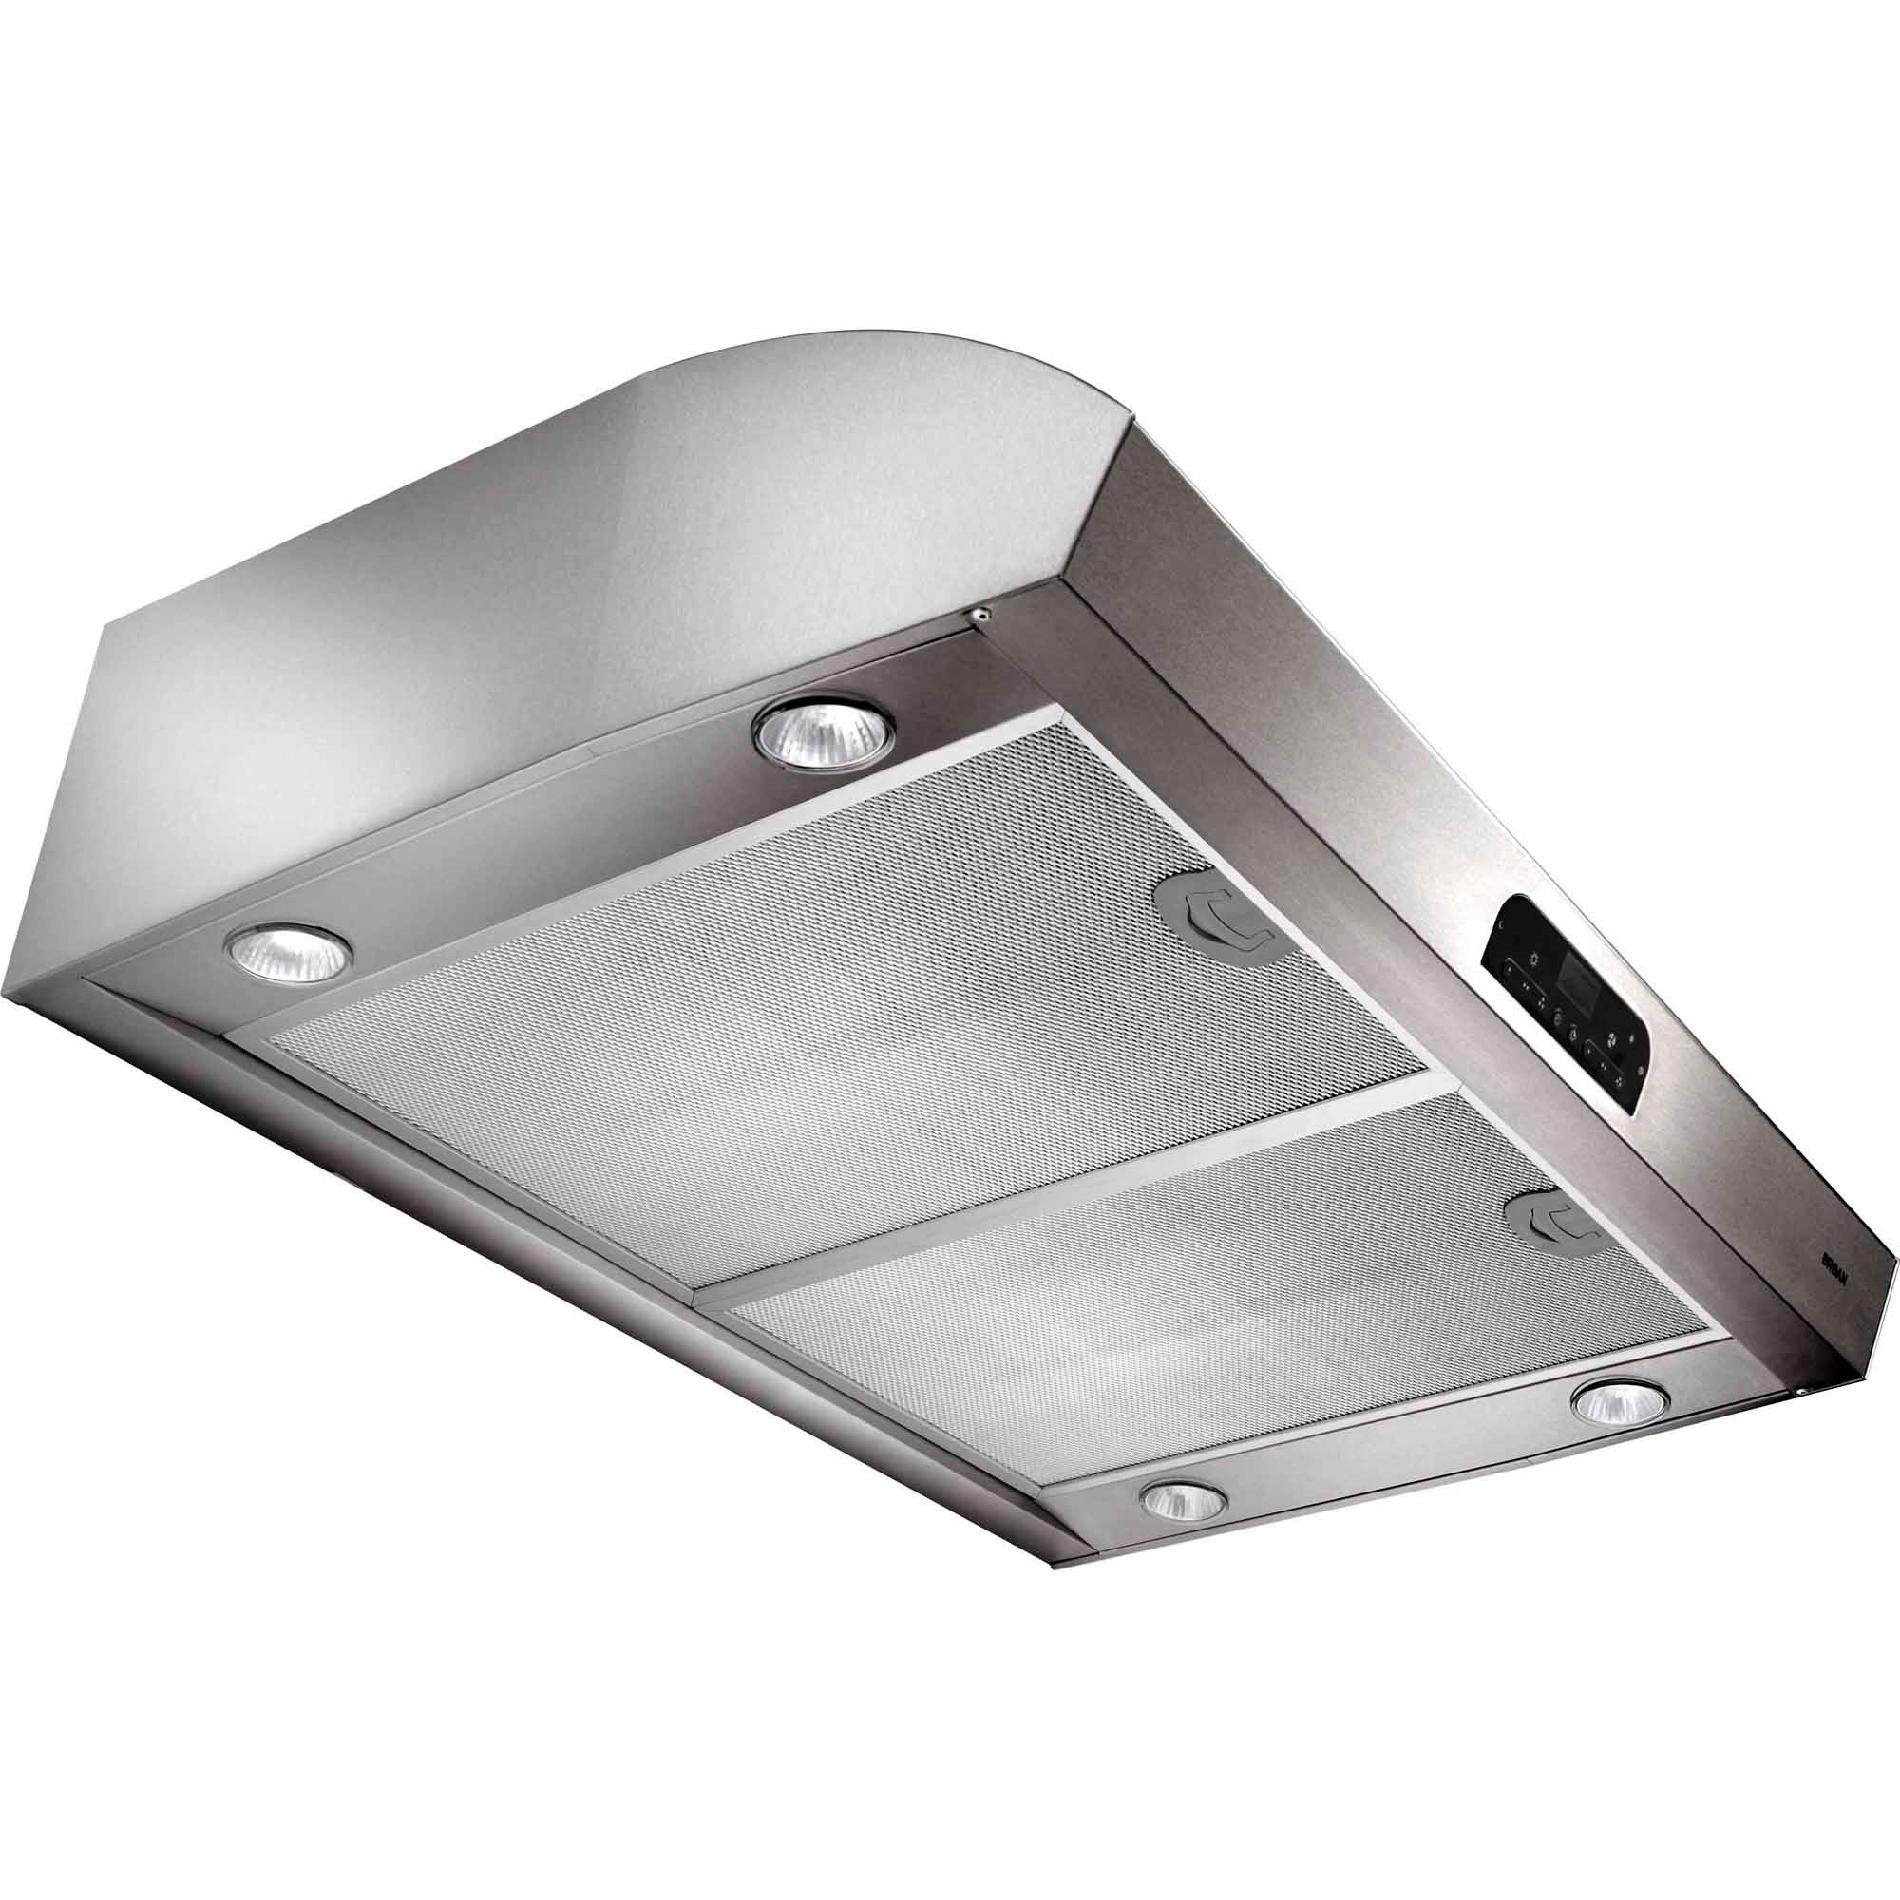 "Broan QP442SS 42"" 630 CFM Under Cabinet Range Hood - Stainless Steel"